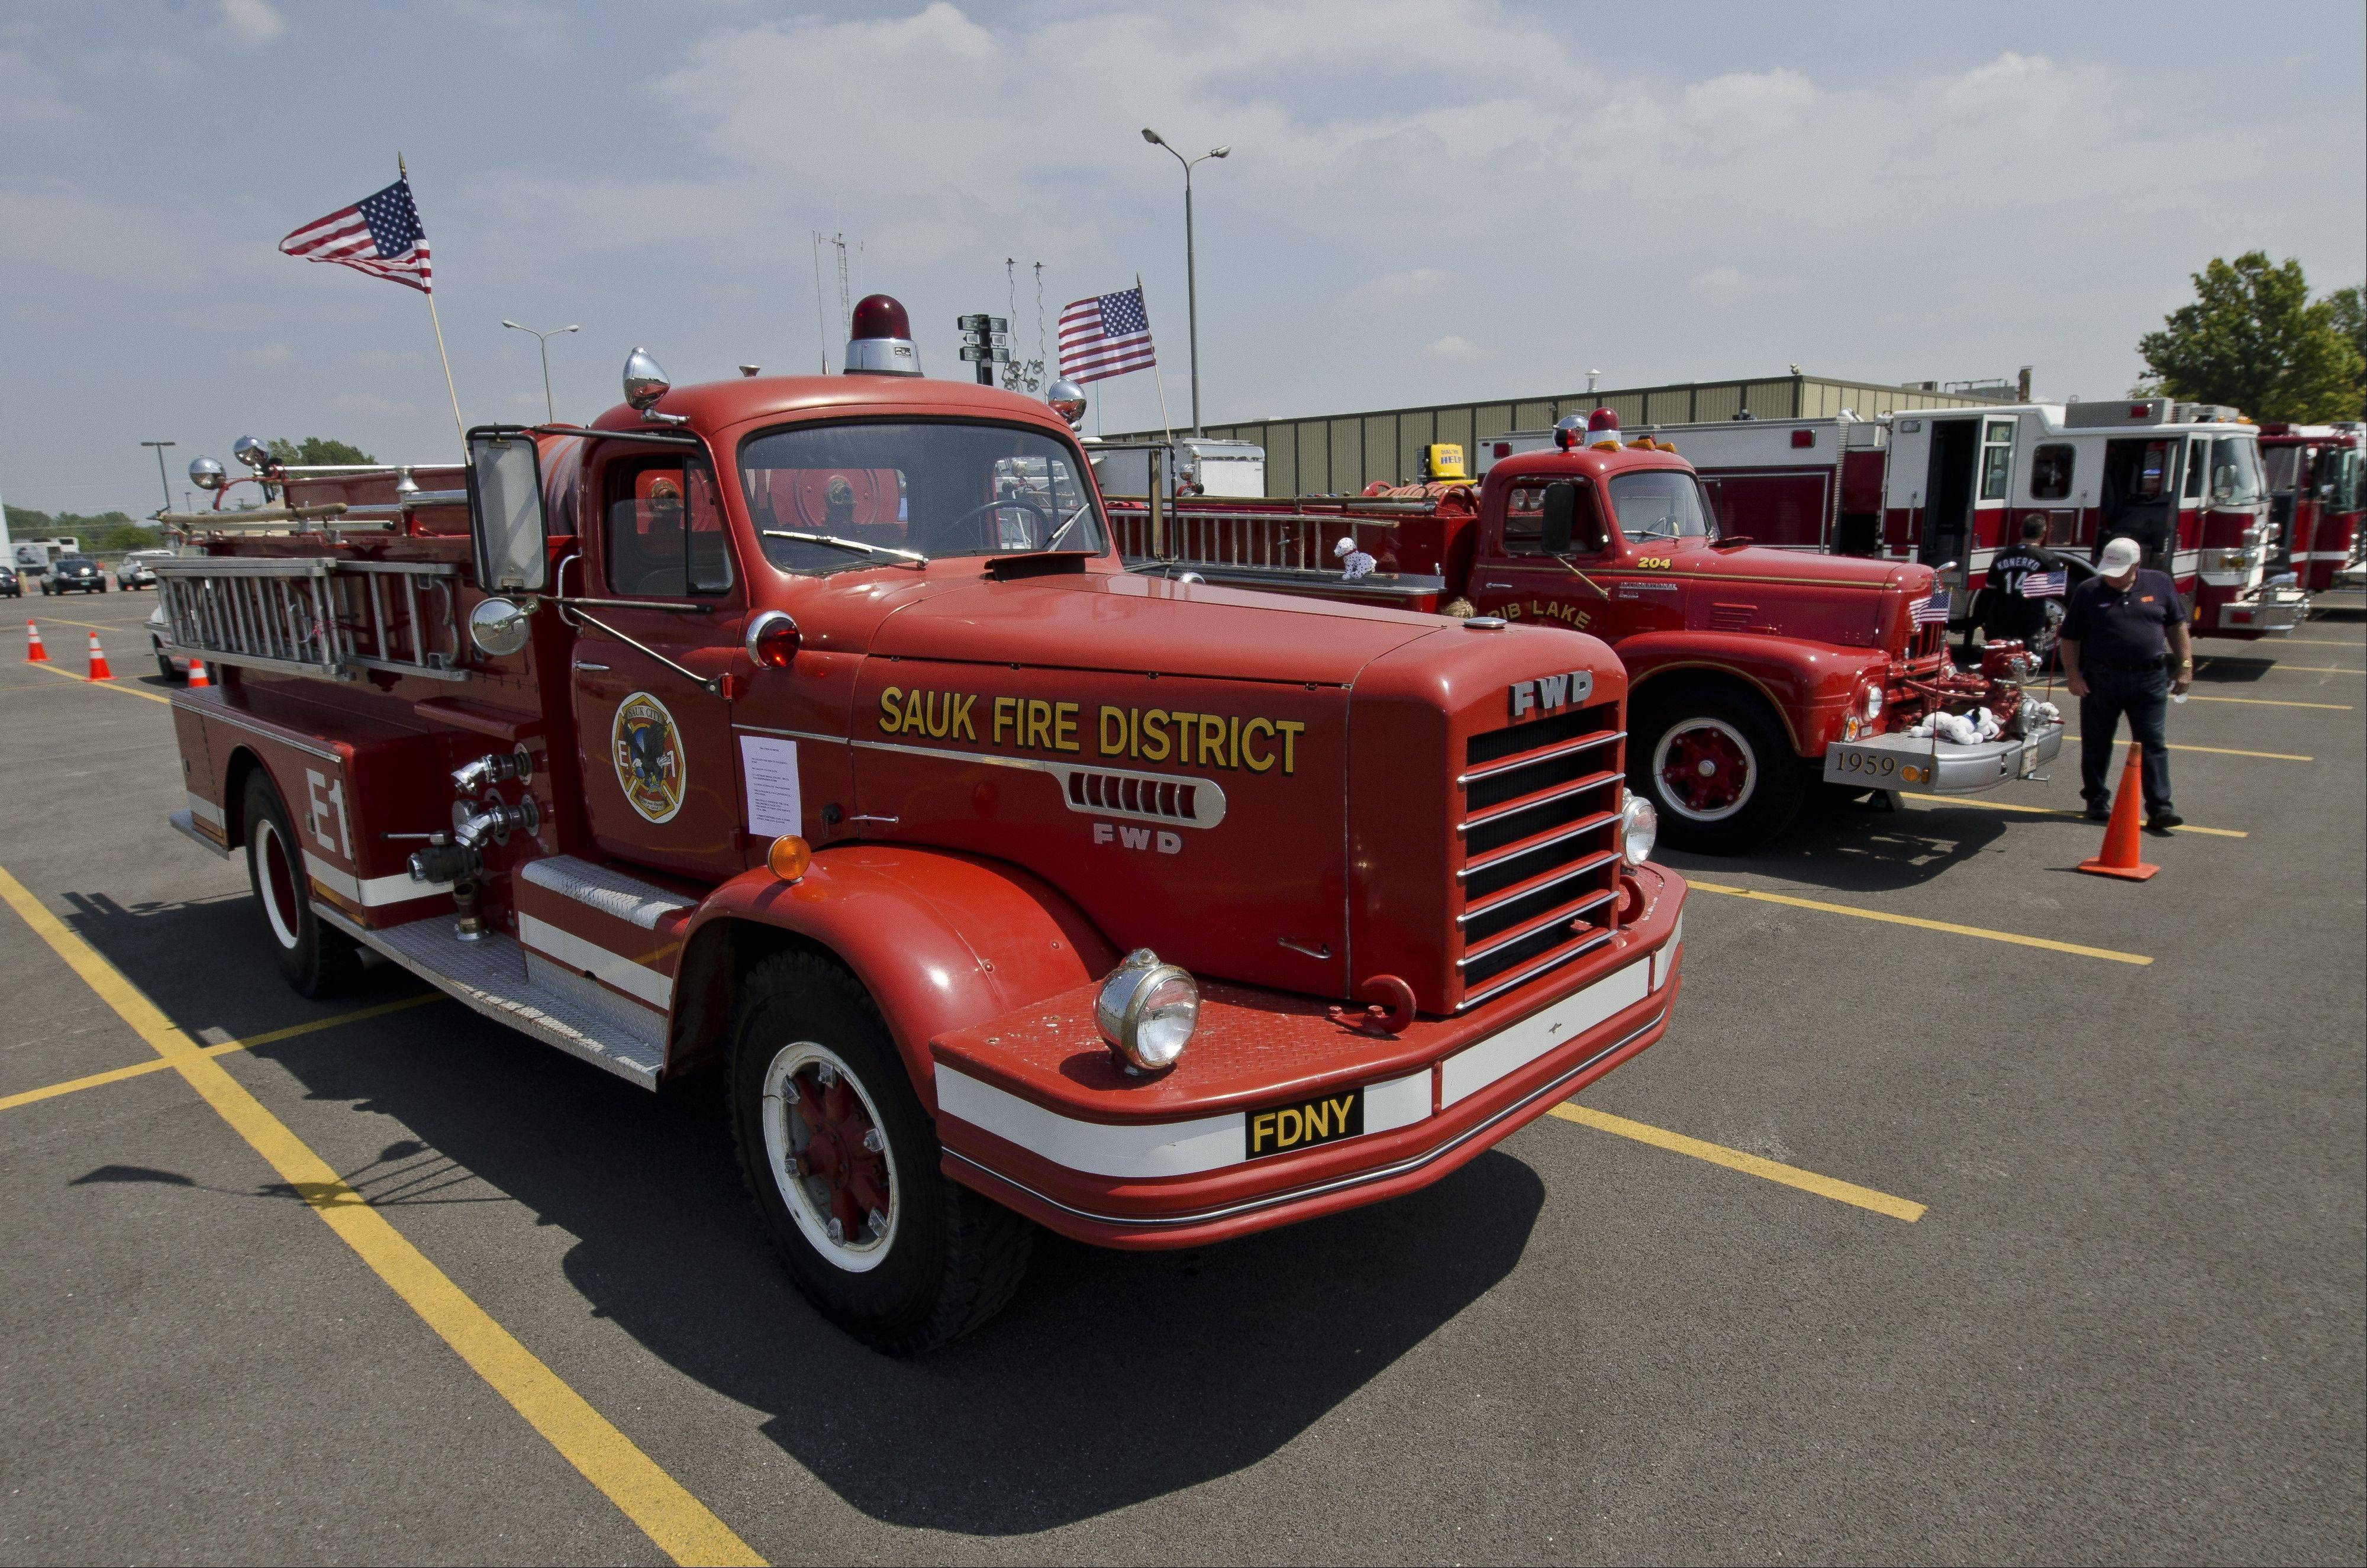 There is a niche group of collectors who like to restore vintage fire trucks and emergency vehicles.